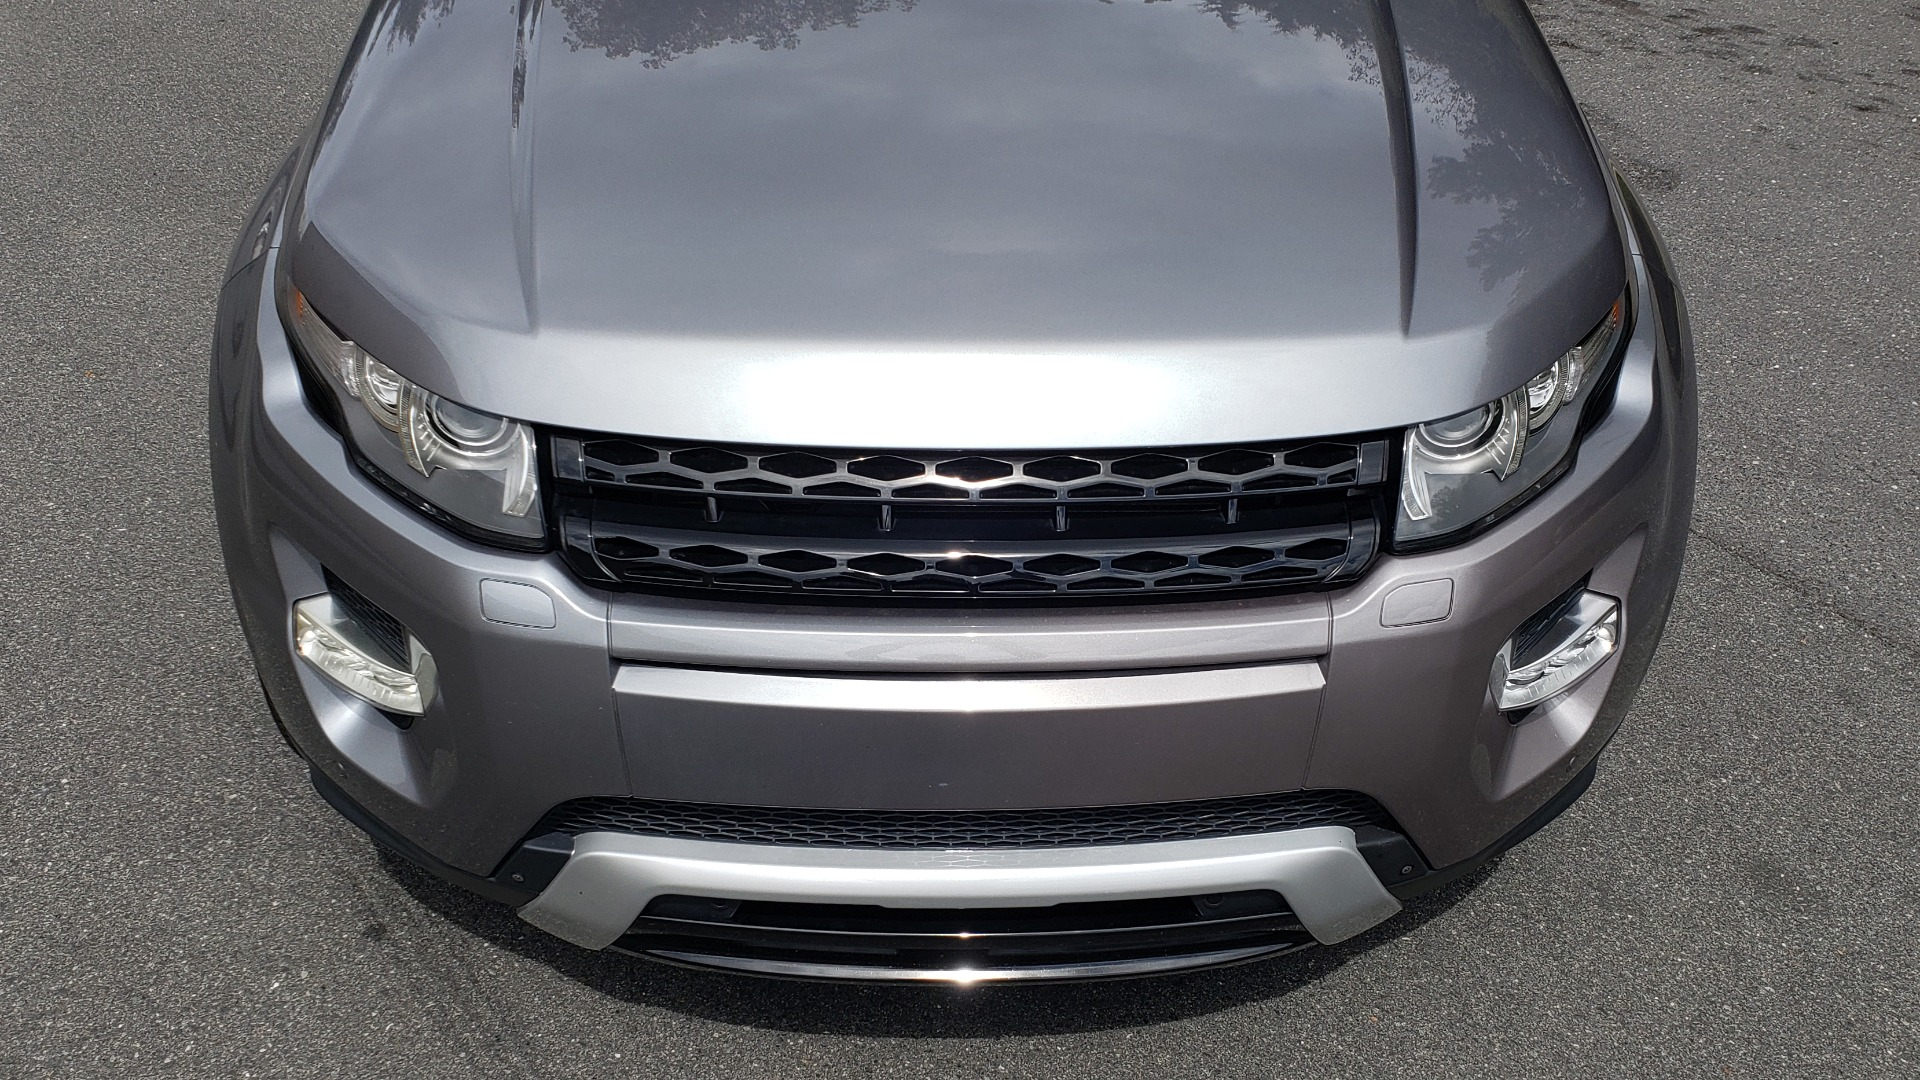 Used 2013 Land Rover RANGE ROVER EVOQUE DYNAMIC PREMIUM / NAV / PANO-ROOF / BLIND SPOT / REARVIEW for sale Sold at Formula Imports in Charlotte NC 28227 31